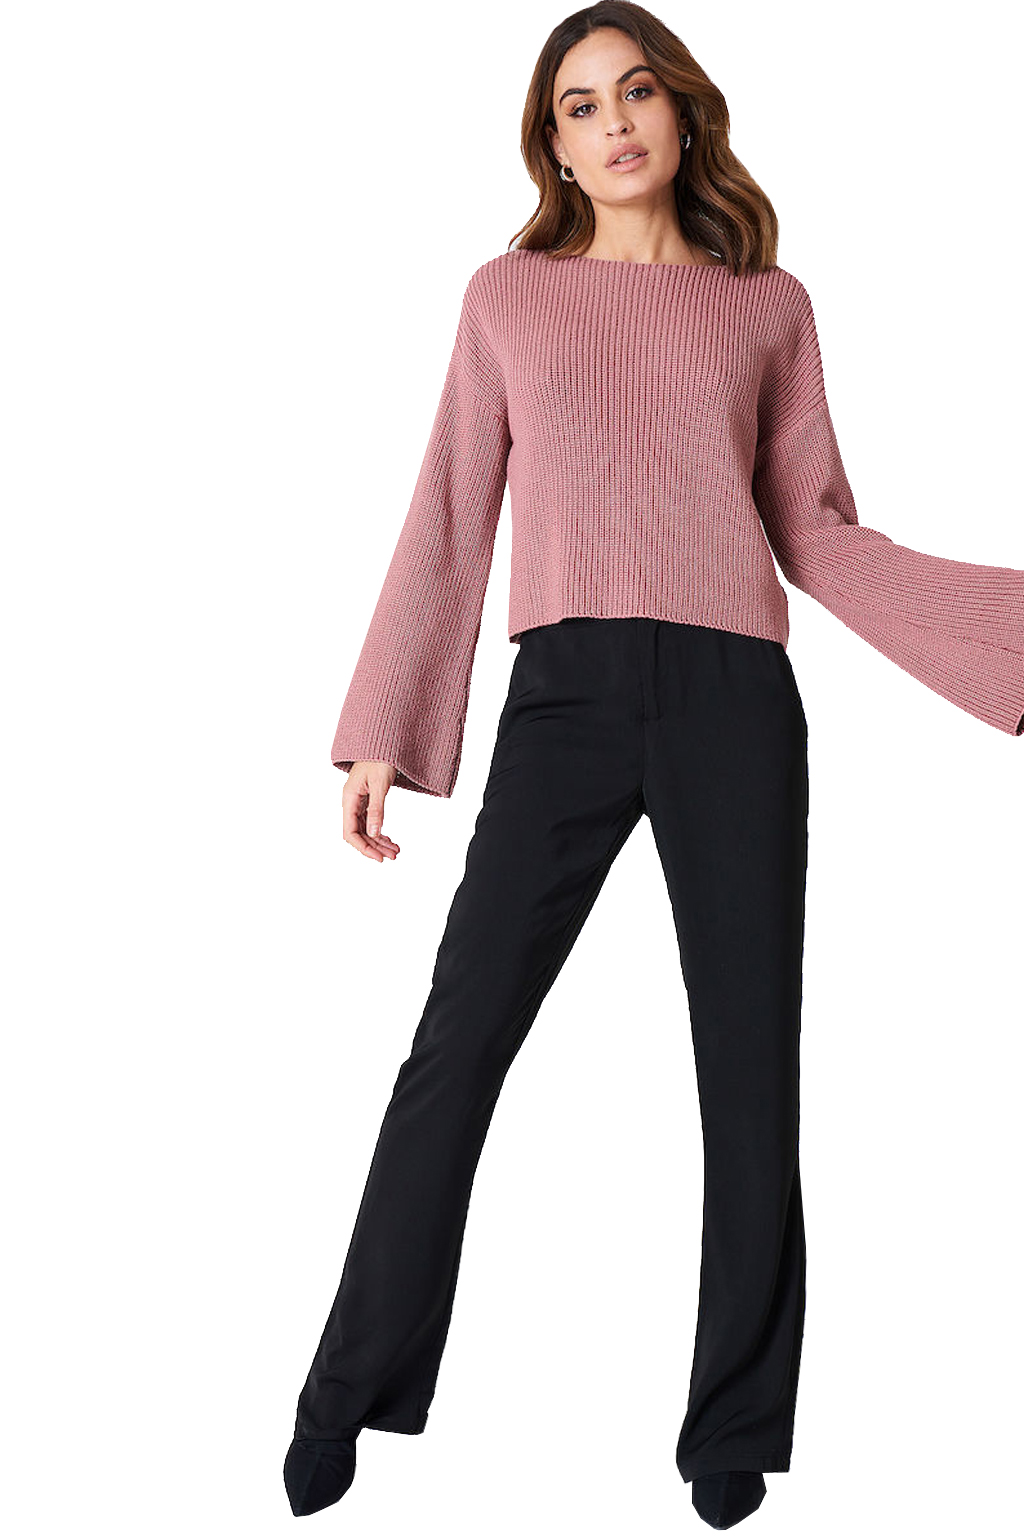 bdfce0539f74 NA-KD CROPPED LONG SLEEVE KNITTED ΠΛΕΚΤΟ ΓΥΝΑΙΚΕΙΟ 1100-000413 ...